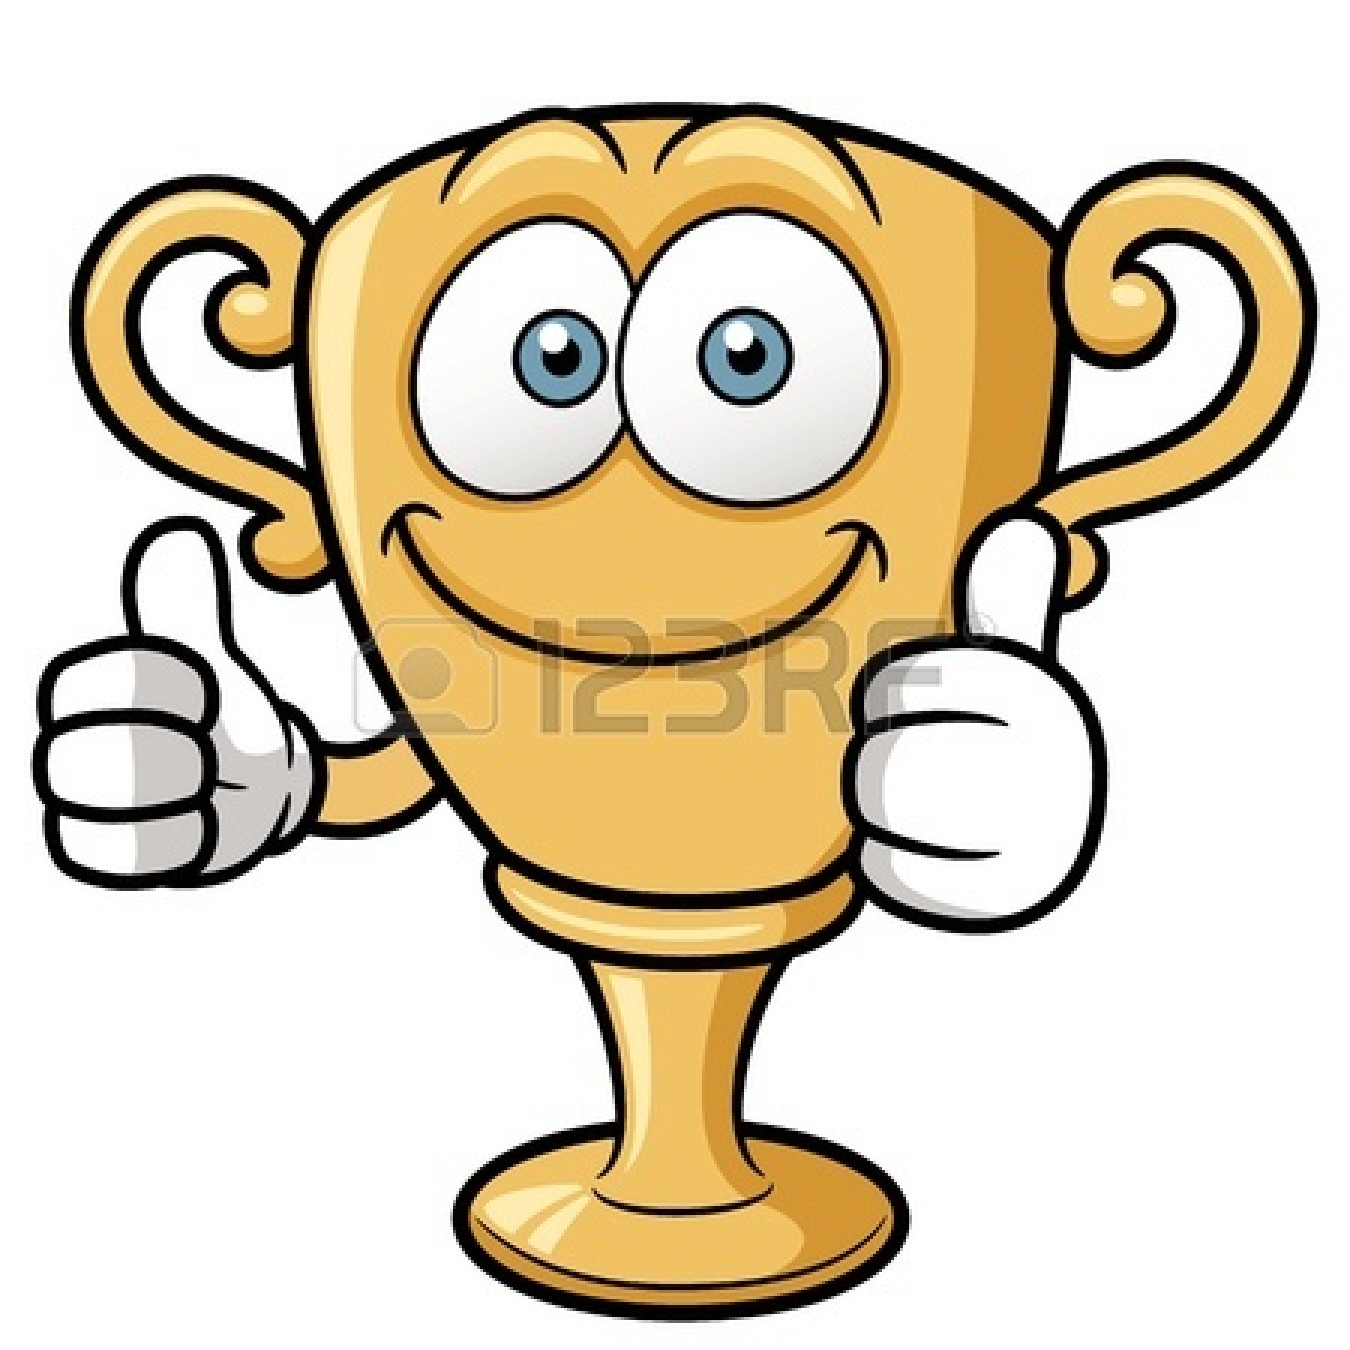 Trophy clipart tournament Cps Free Lu3irm Clipart Images